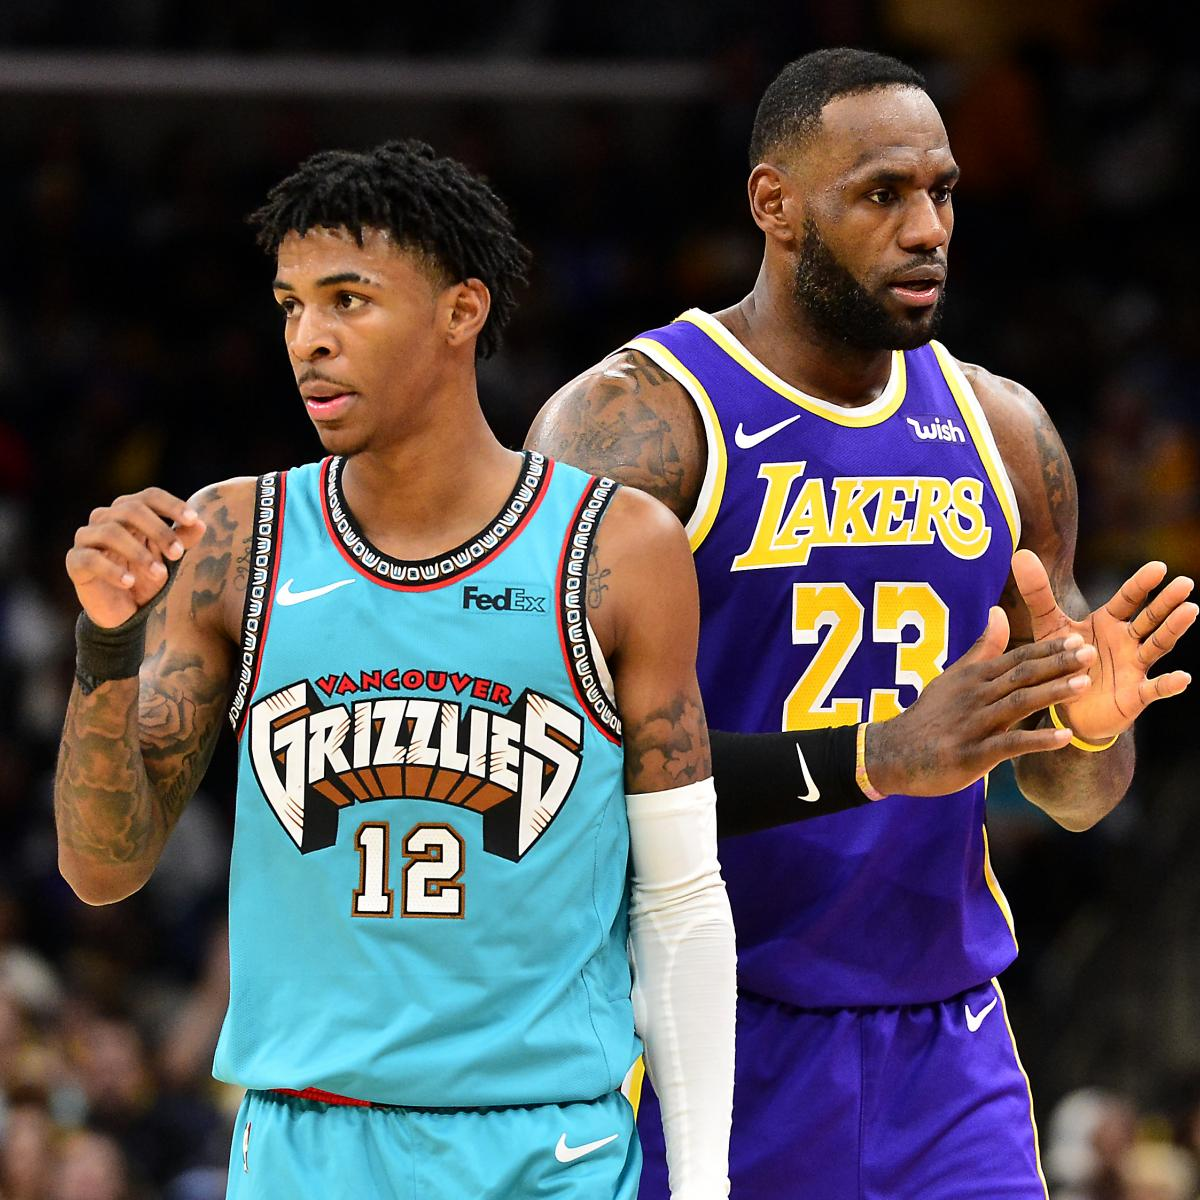 Ranking NBA Playoff Hopefuls Who'd Give No. 1 Seed Bucks and Lakers Most Trouble